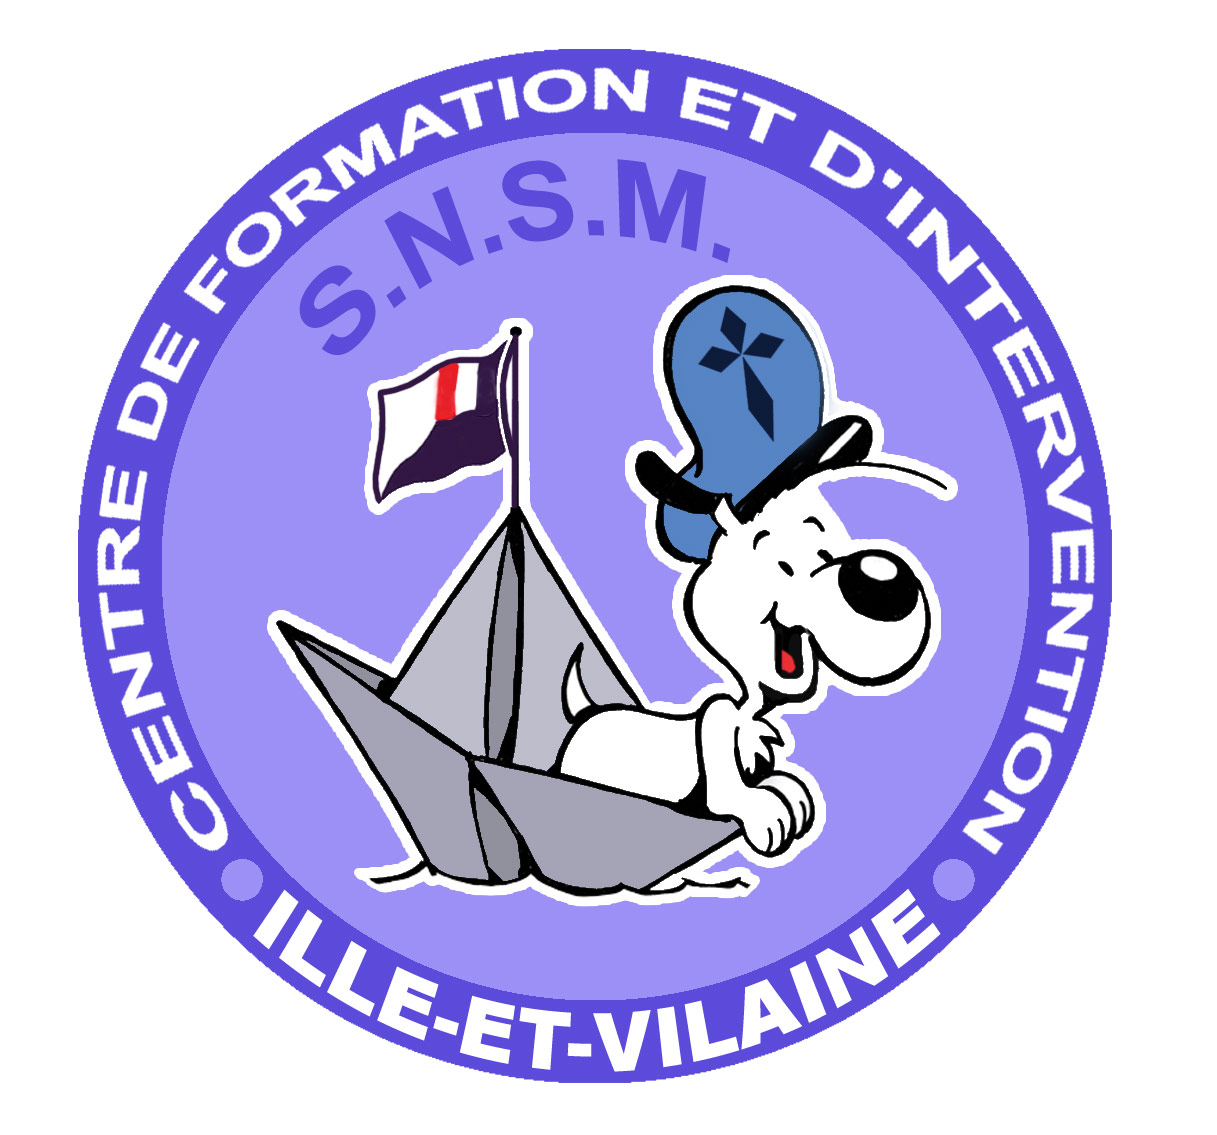 Centre de Formation et d'Intervention d'Ille et Vilaine